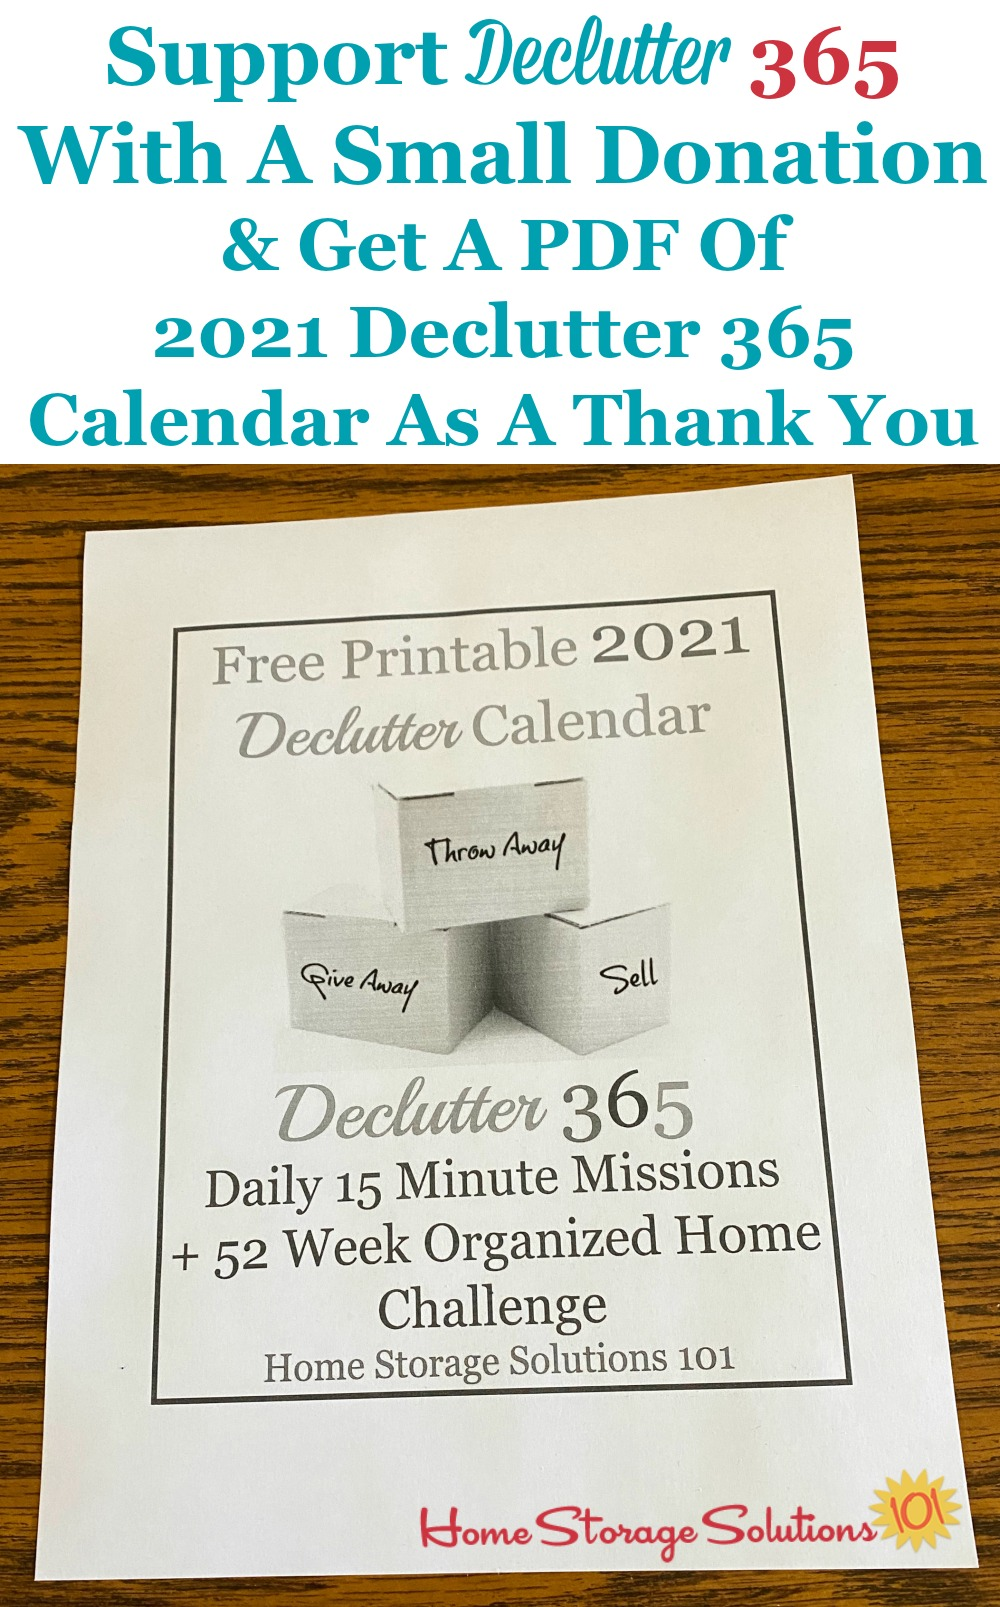 Support Declutter 365 with a small donation and get a PDF of the 2021 Declutter 365 calendar as a thank you {on Home Storage Solutions 101} #Declutter365 #DeclutterHome #DeclutteringTips